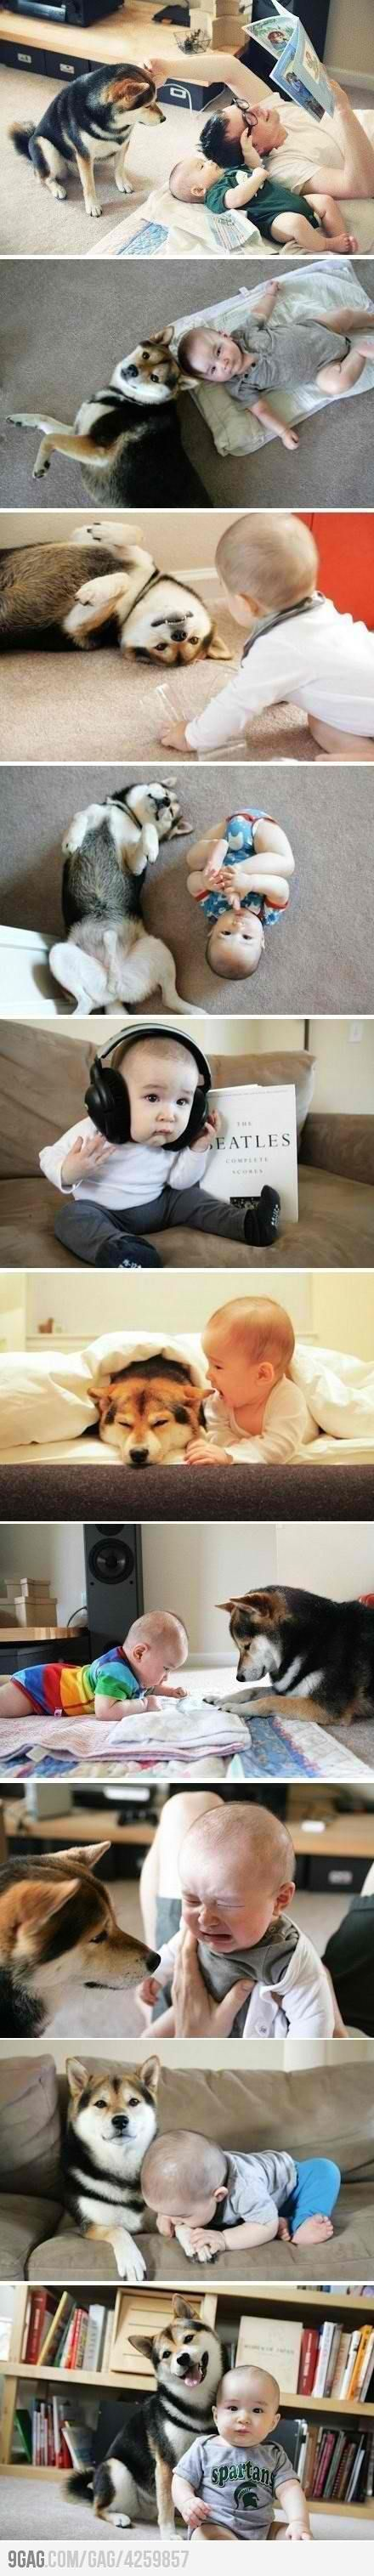 Best Friends- this is adorable